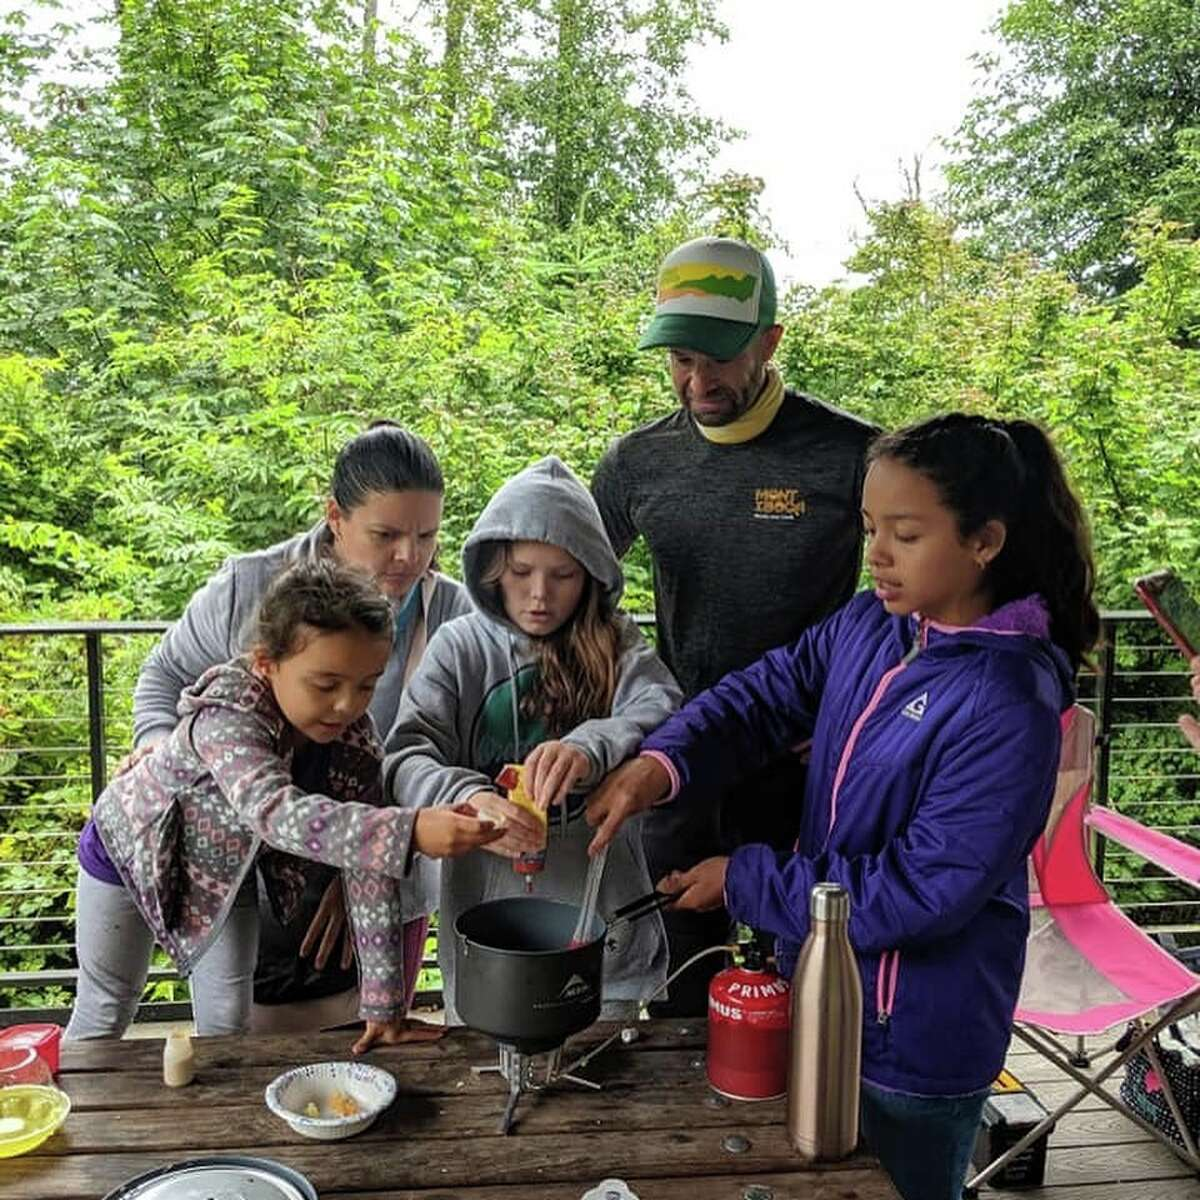 Chef Corso works with the Girl Scouts of Western Washington, bringing awareness to easy and healthy meals to create in the outdoors.